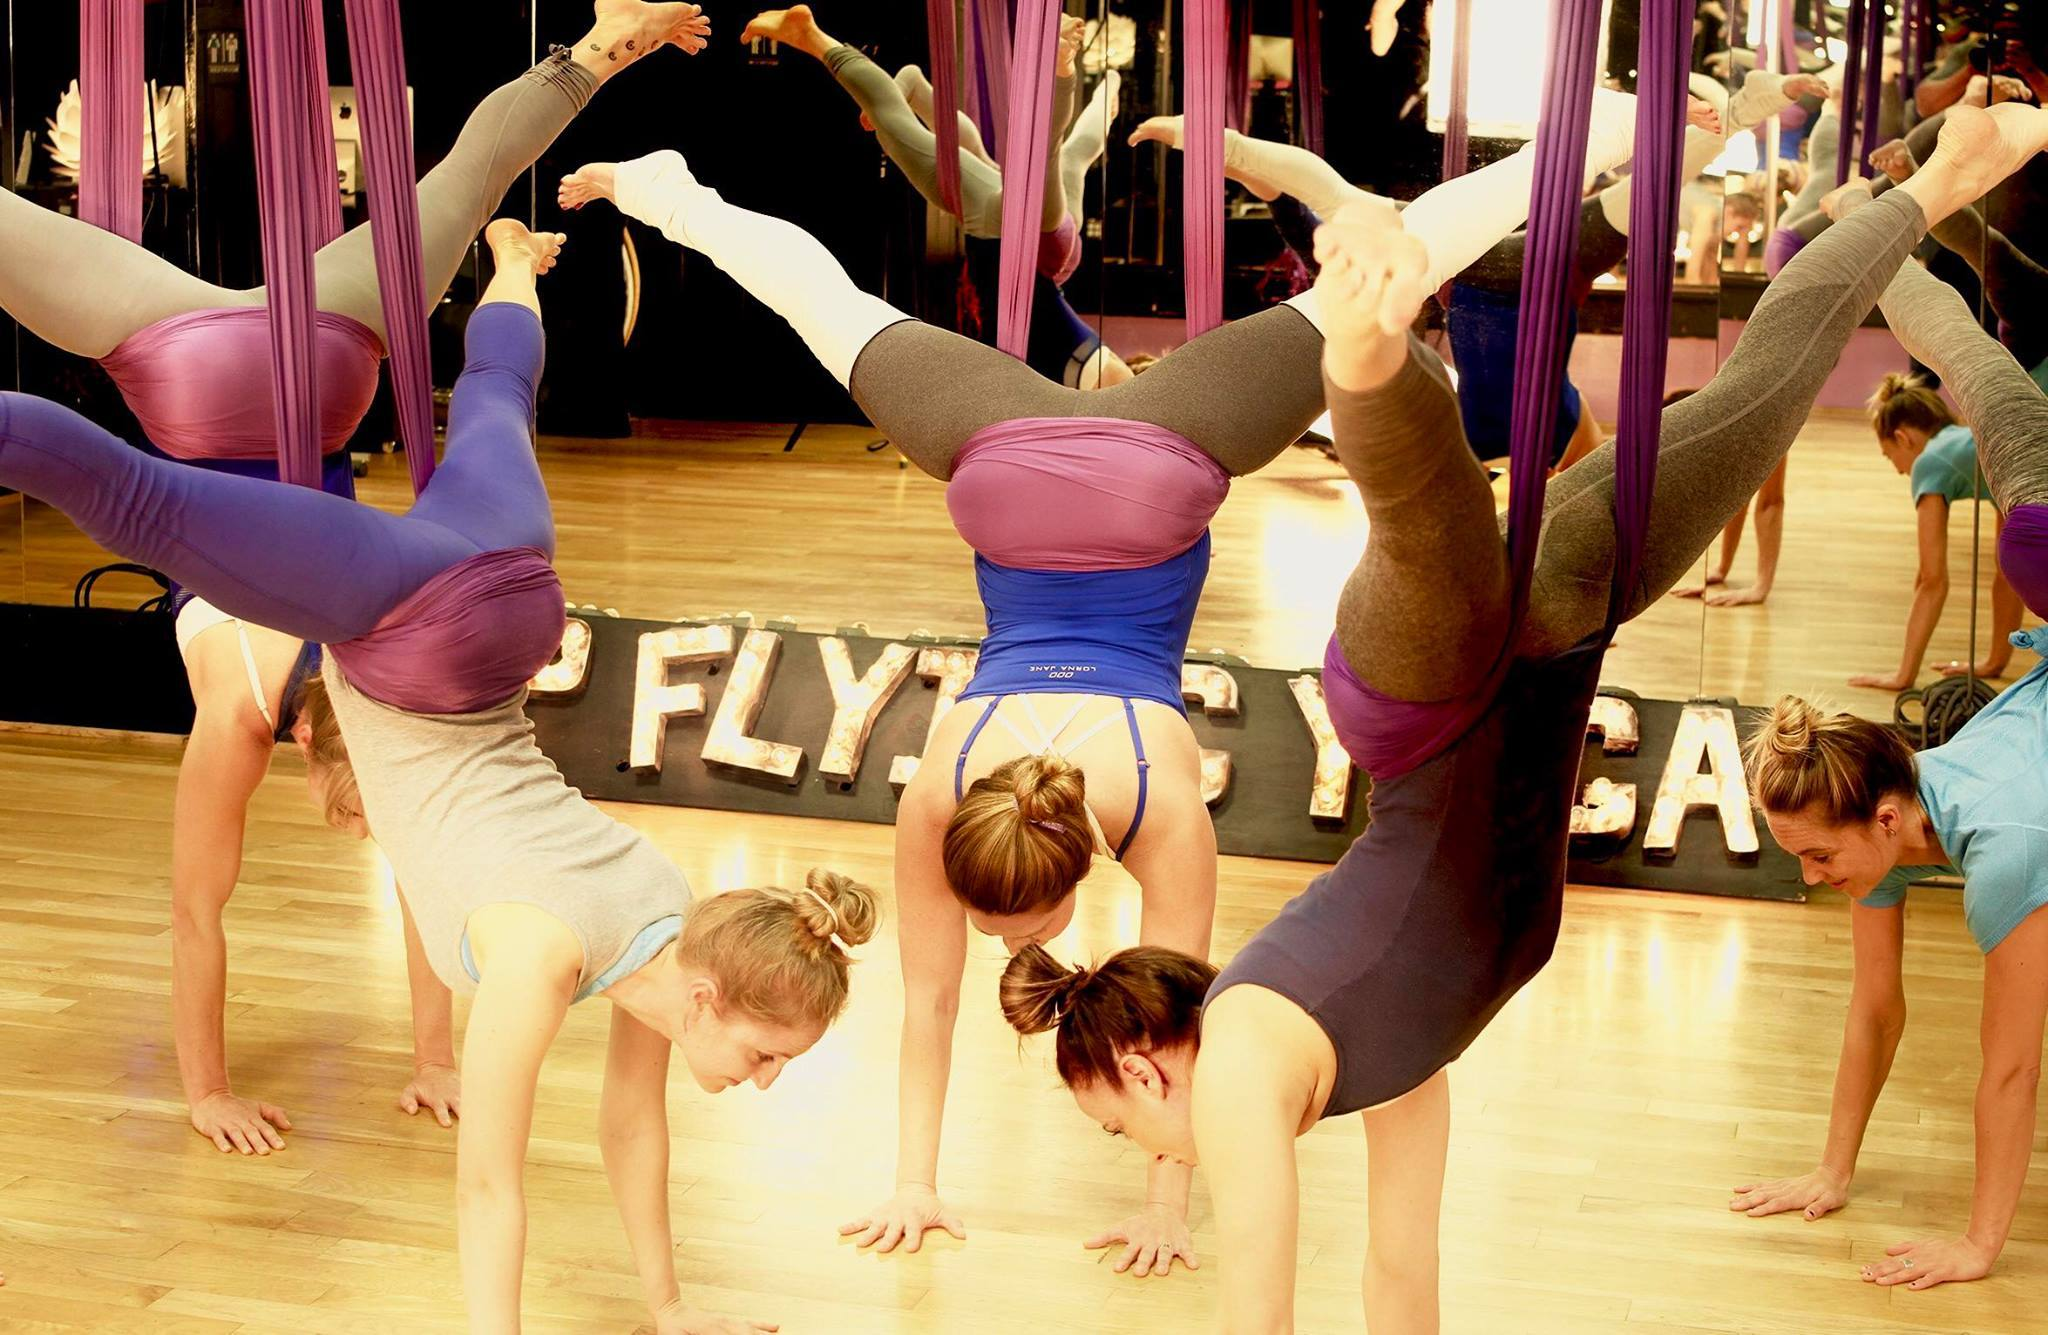 Up Flying Yoga in Studio City